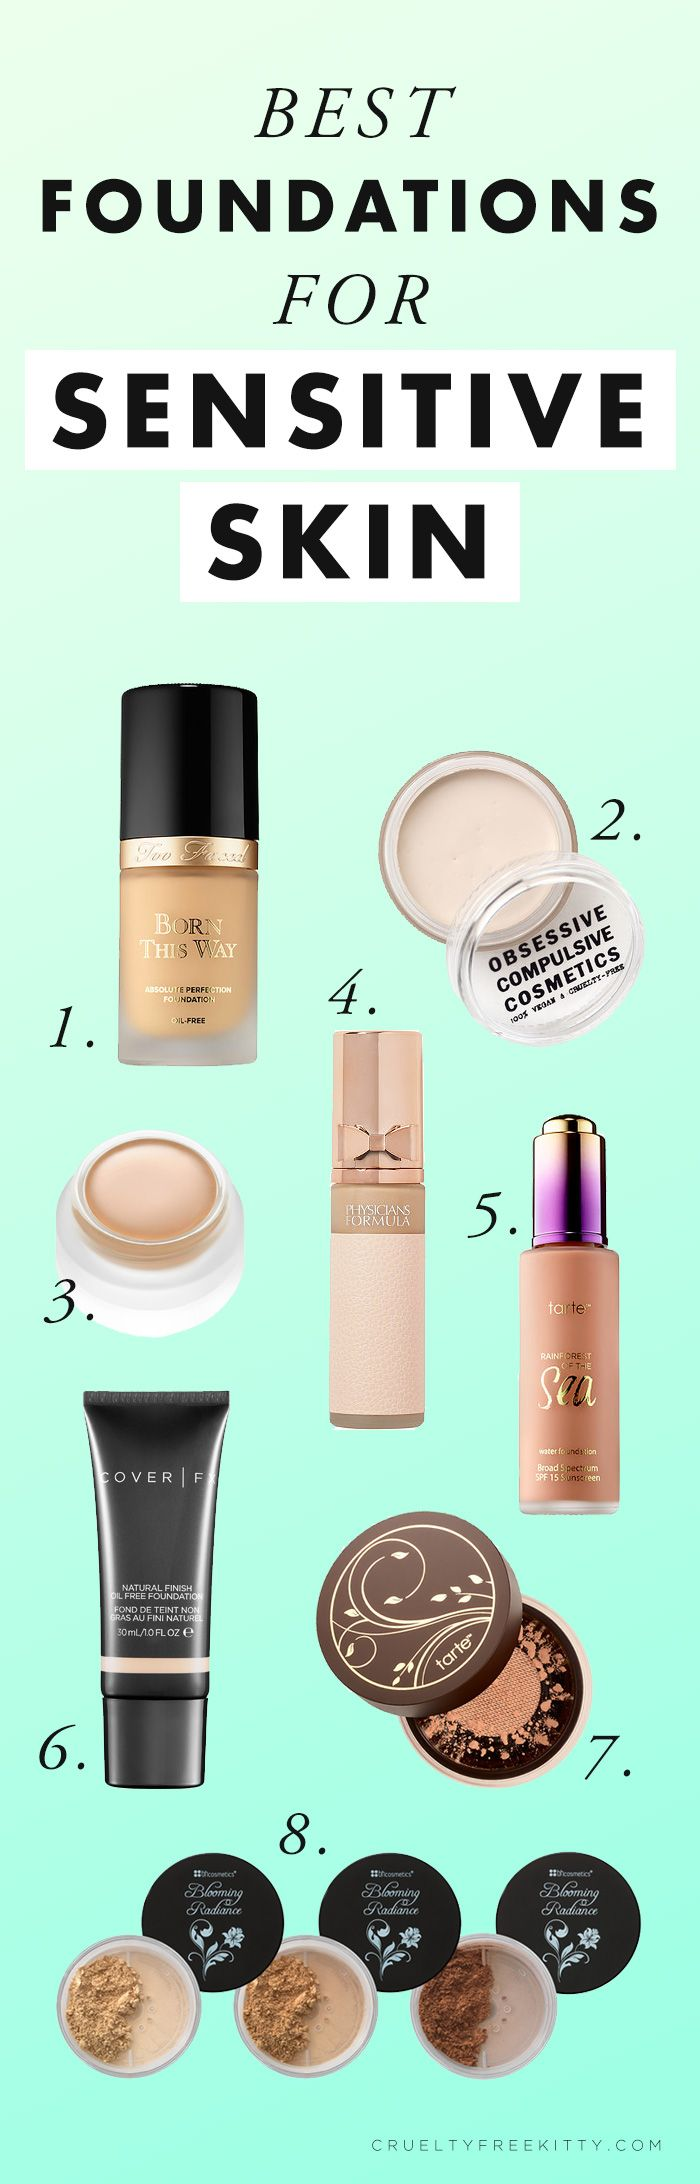 The 8 Best Foundations for Sensitive Skin (No Irritation